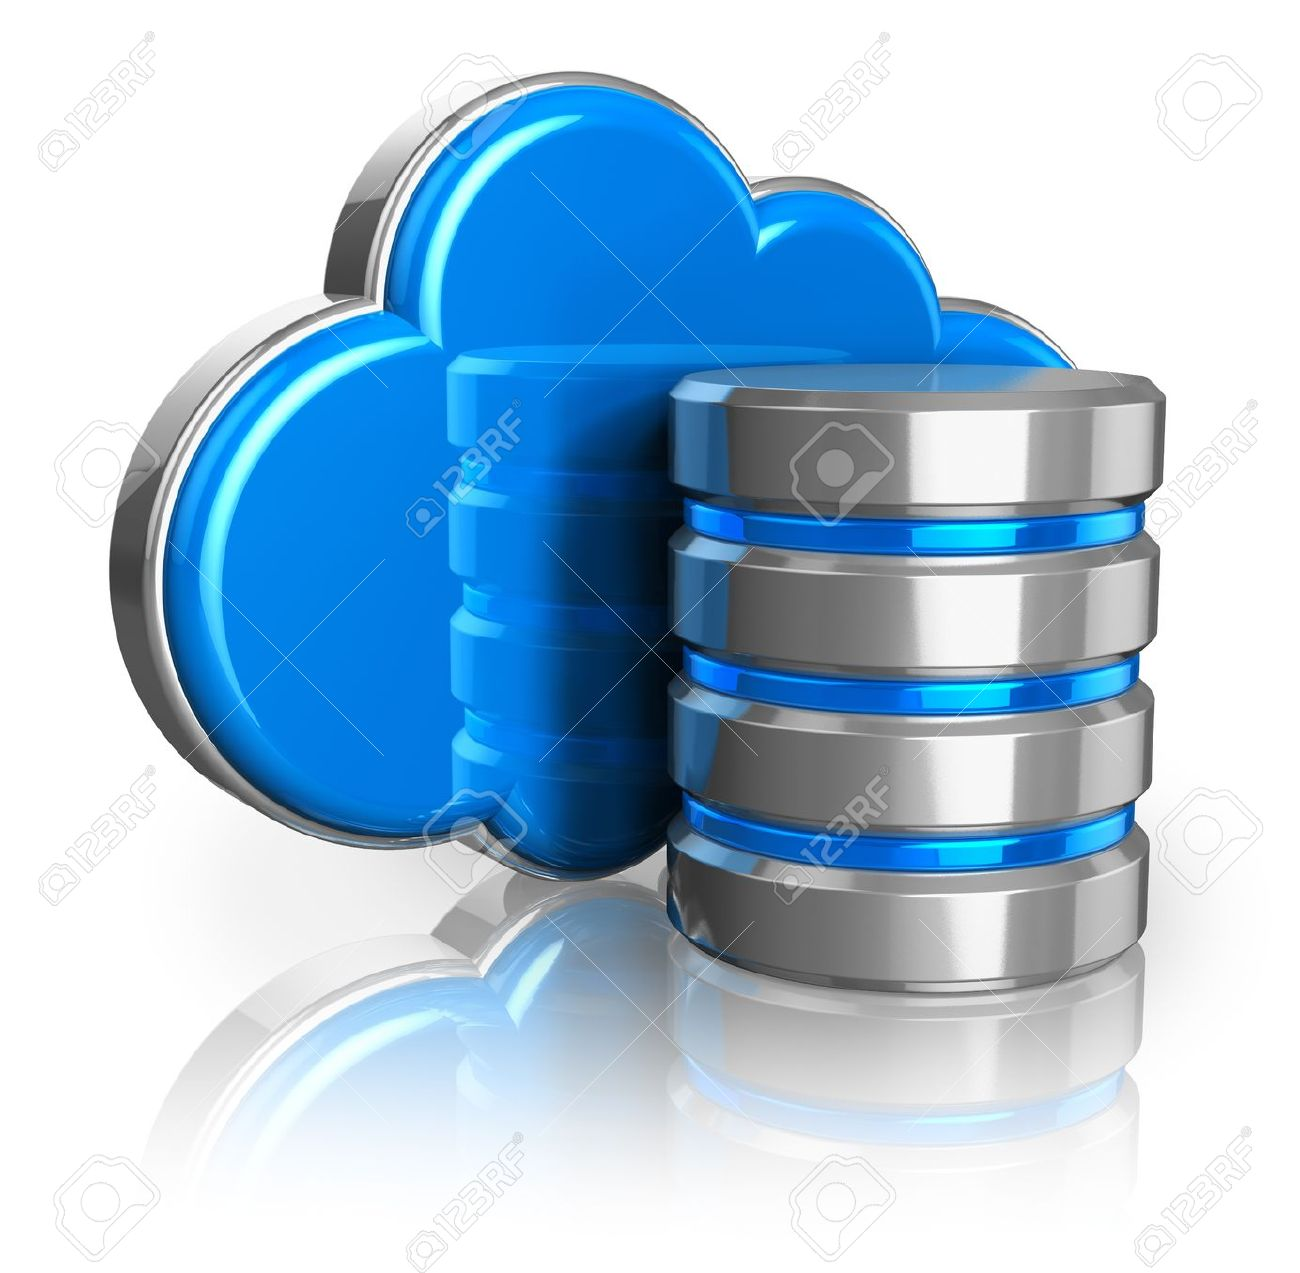 Cloud Computing And Remote Data Storage Concept Blue Glossy.